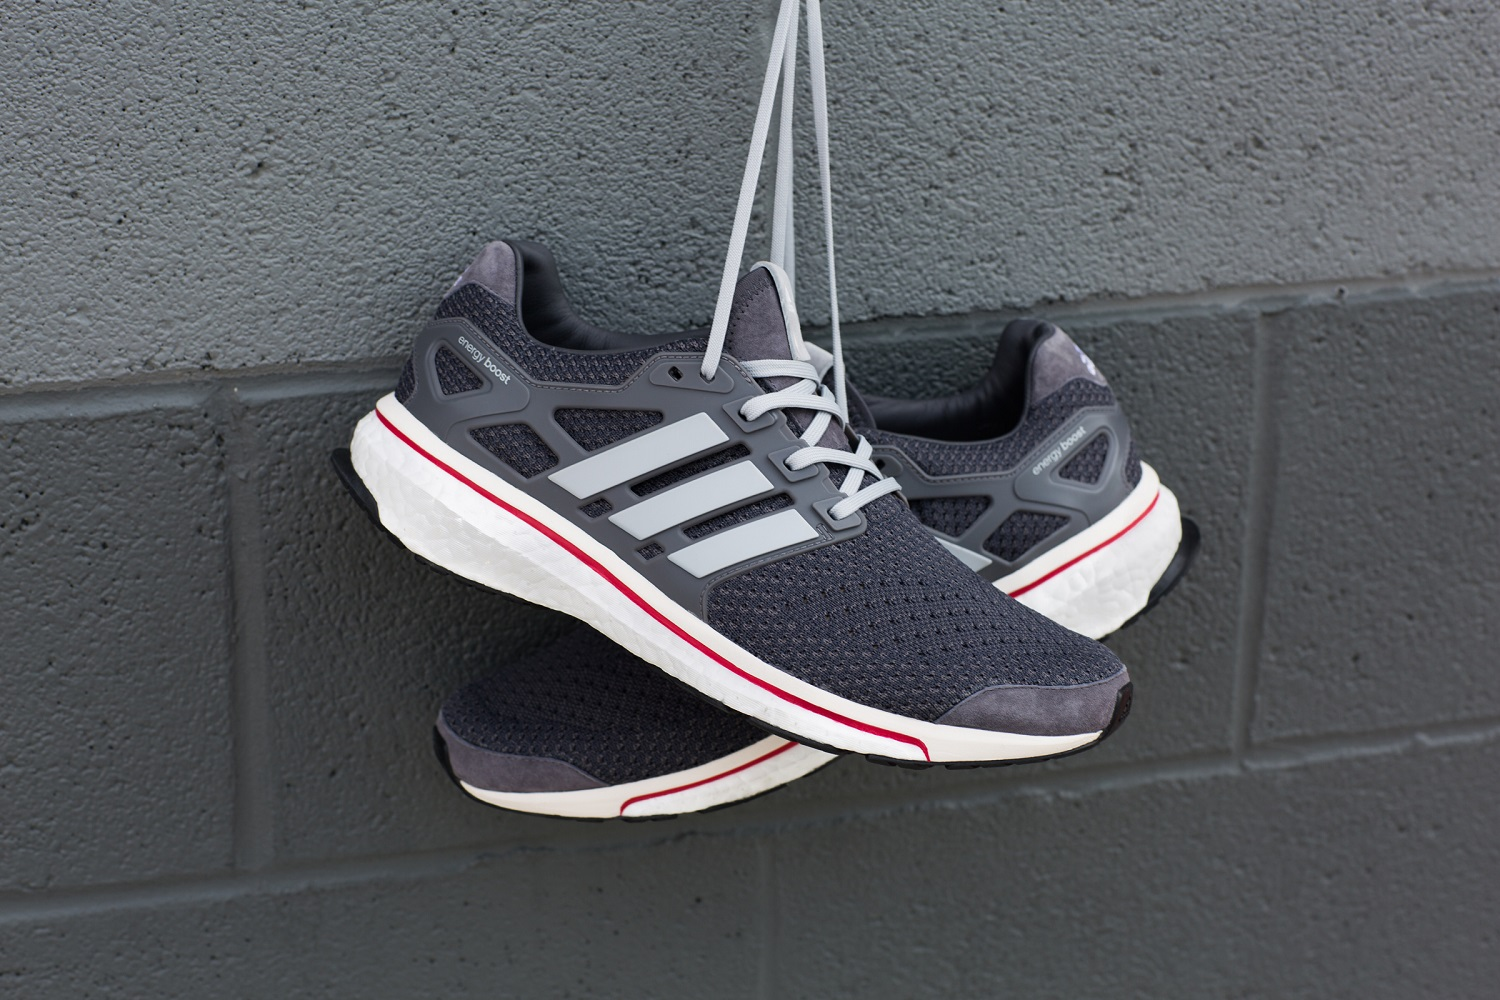 adidas_consortium_run_through_Time_energy_Boost